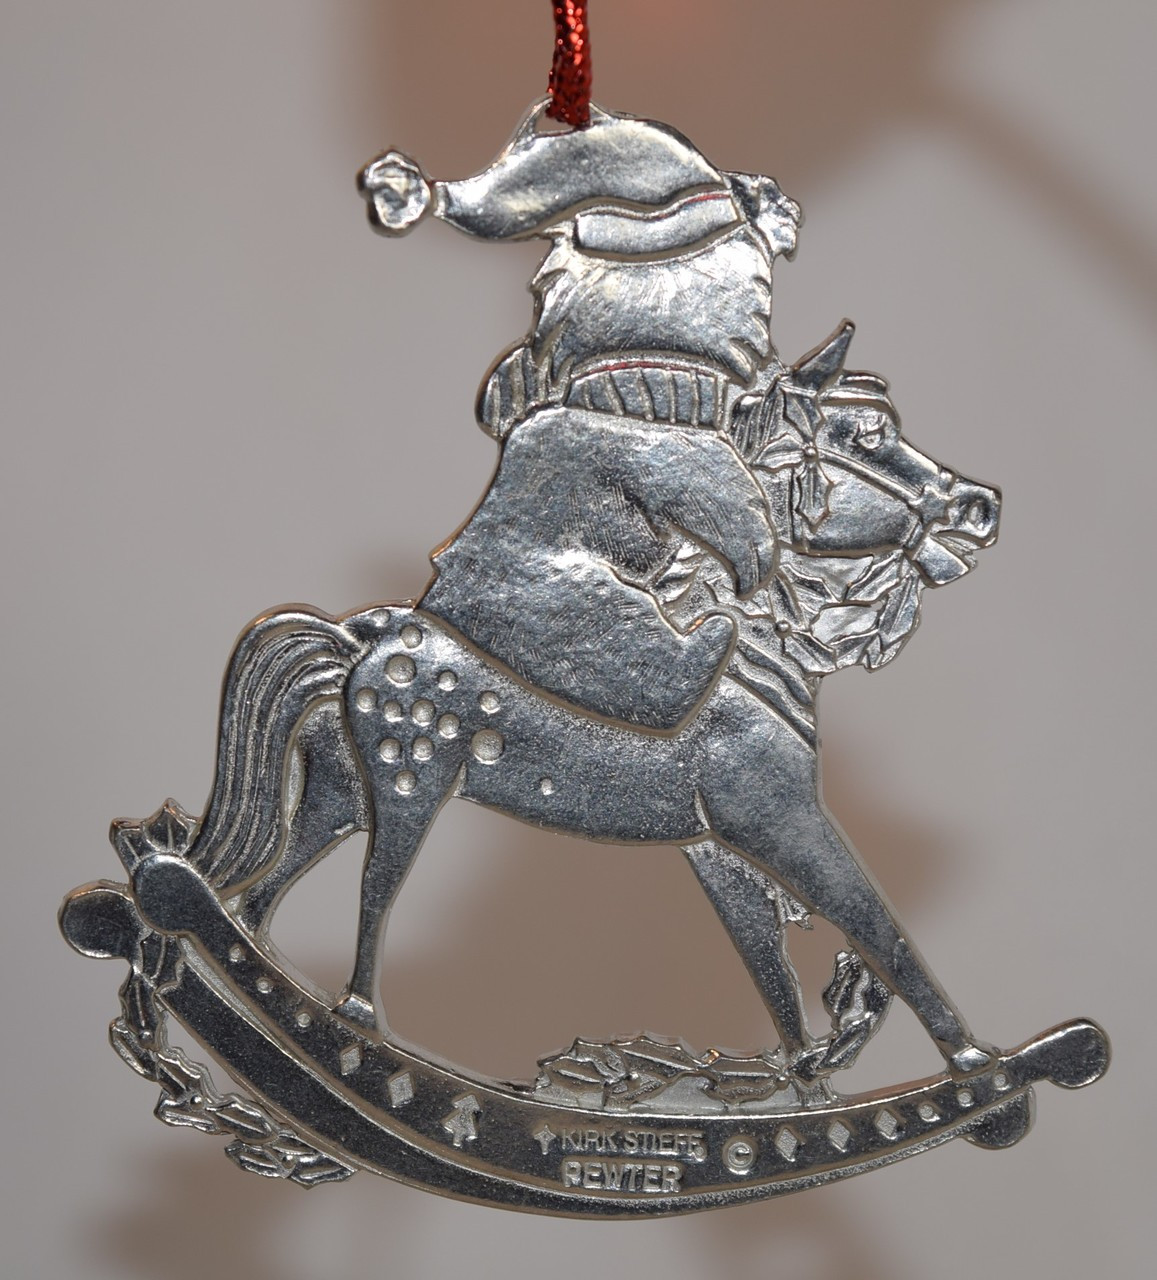 Kirk Stieff Pewter Teddy Bear On Rocking Horse Ornament Ornament Only Thurbers Of Richmond